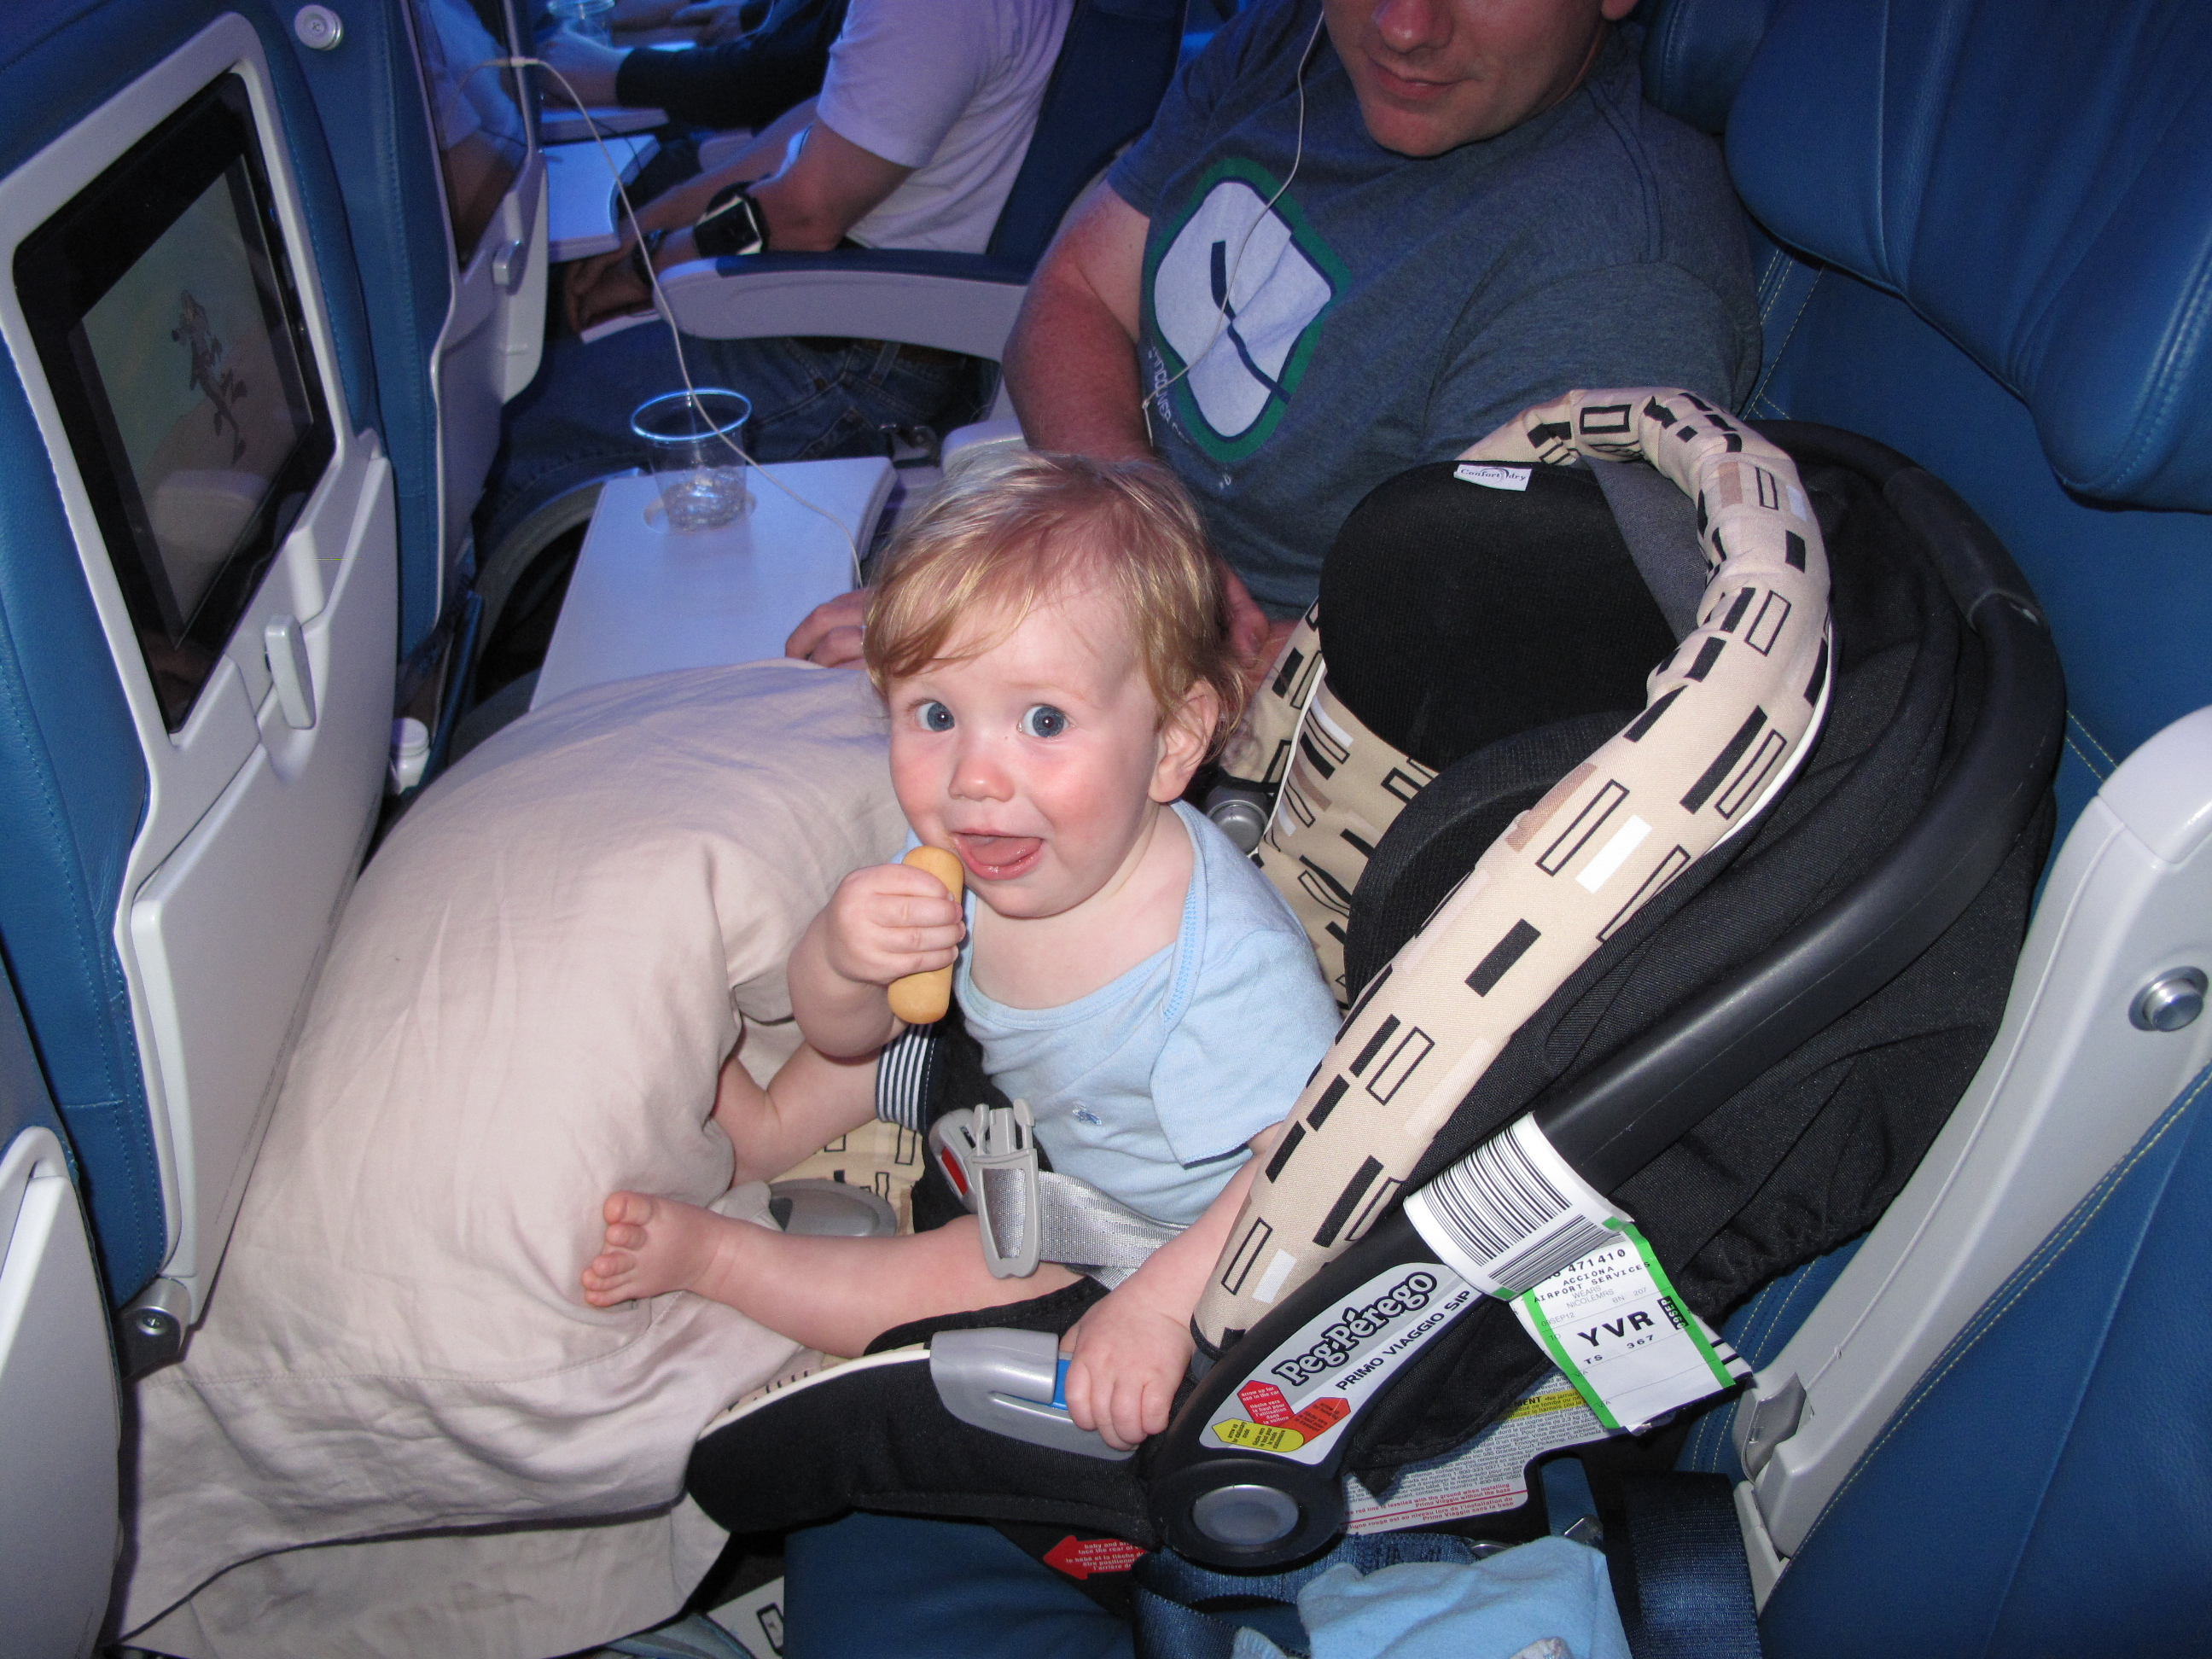 It's ain't always pretty: Our flight from hell with Baby B